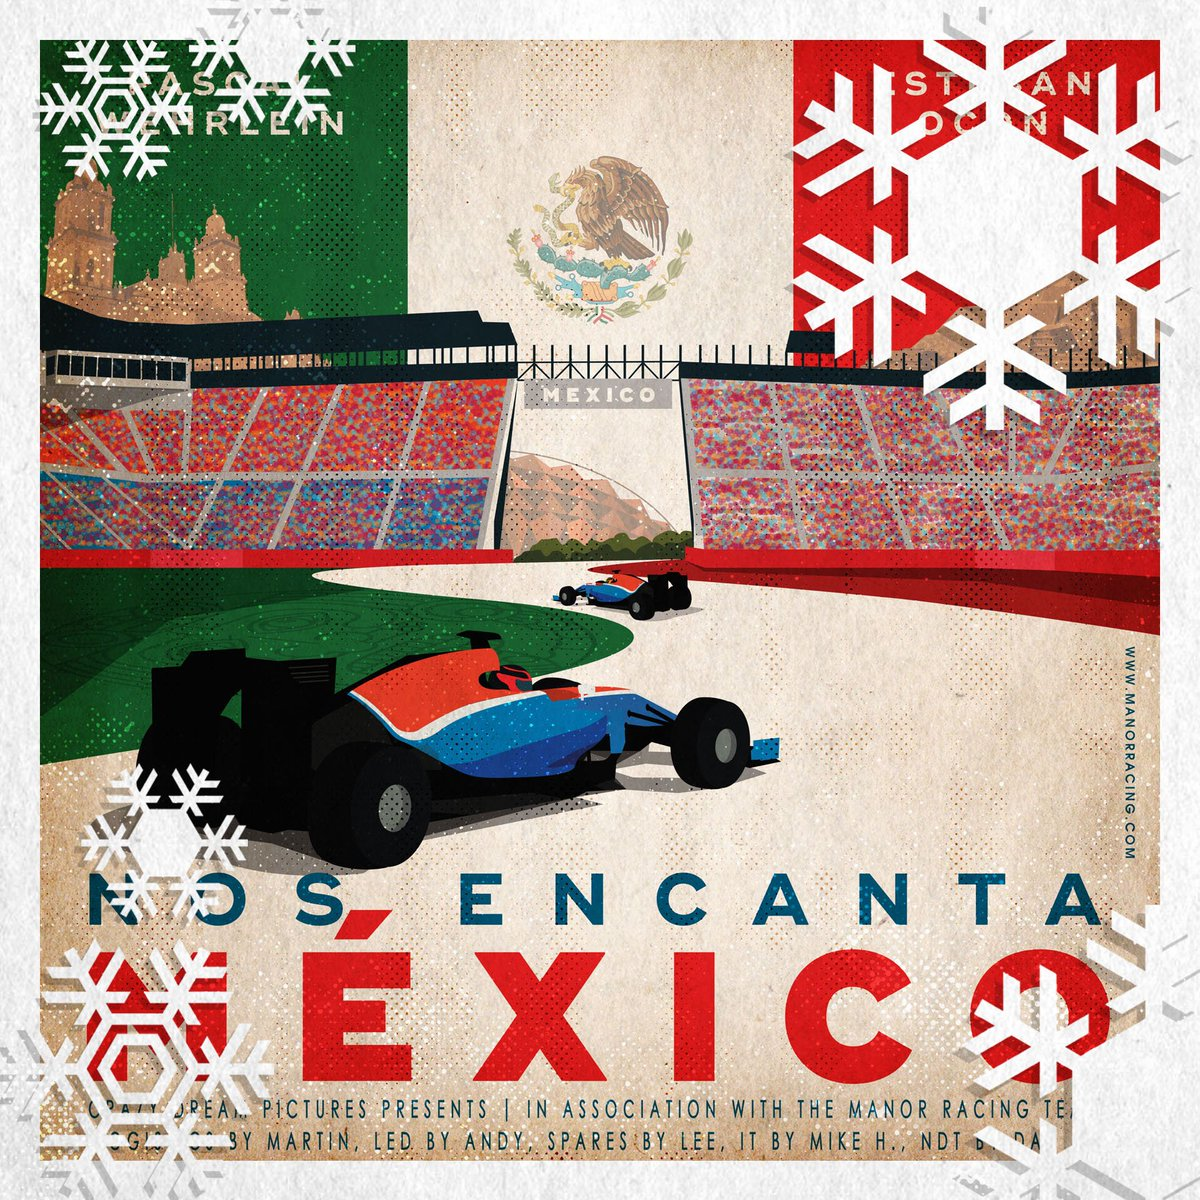 Only 3 more Race Poster Rerun days to go. Here's #MexicoGP, scene of Pascal's 4th Q2 appearance (of 5). https://t.co/t2Q5Stb5ue